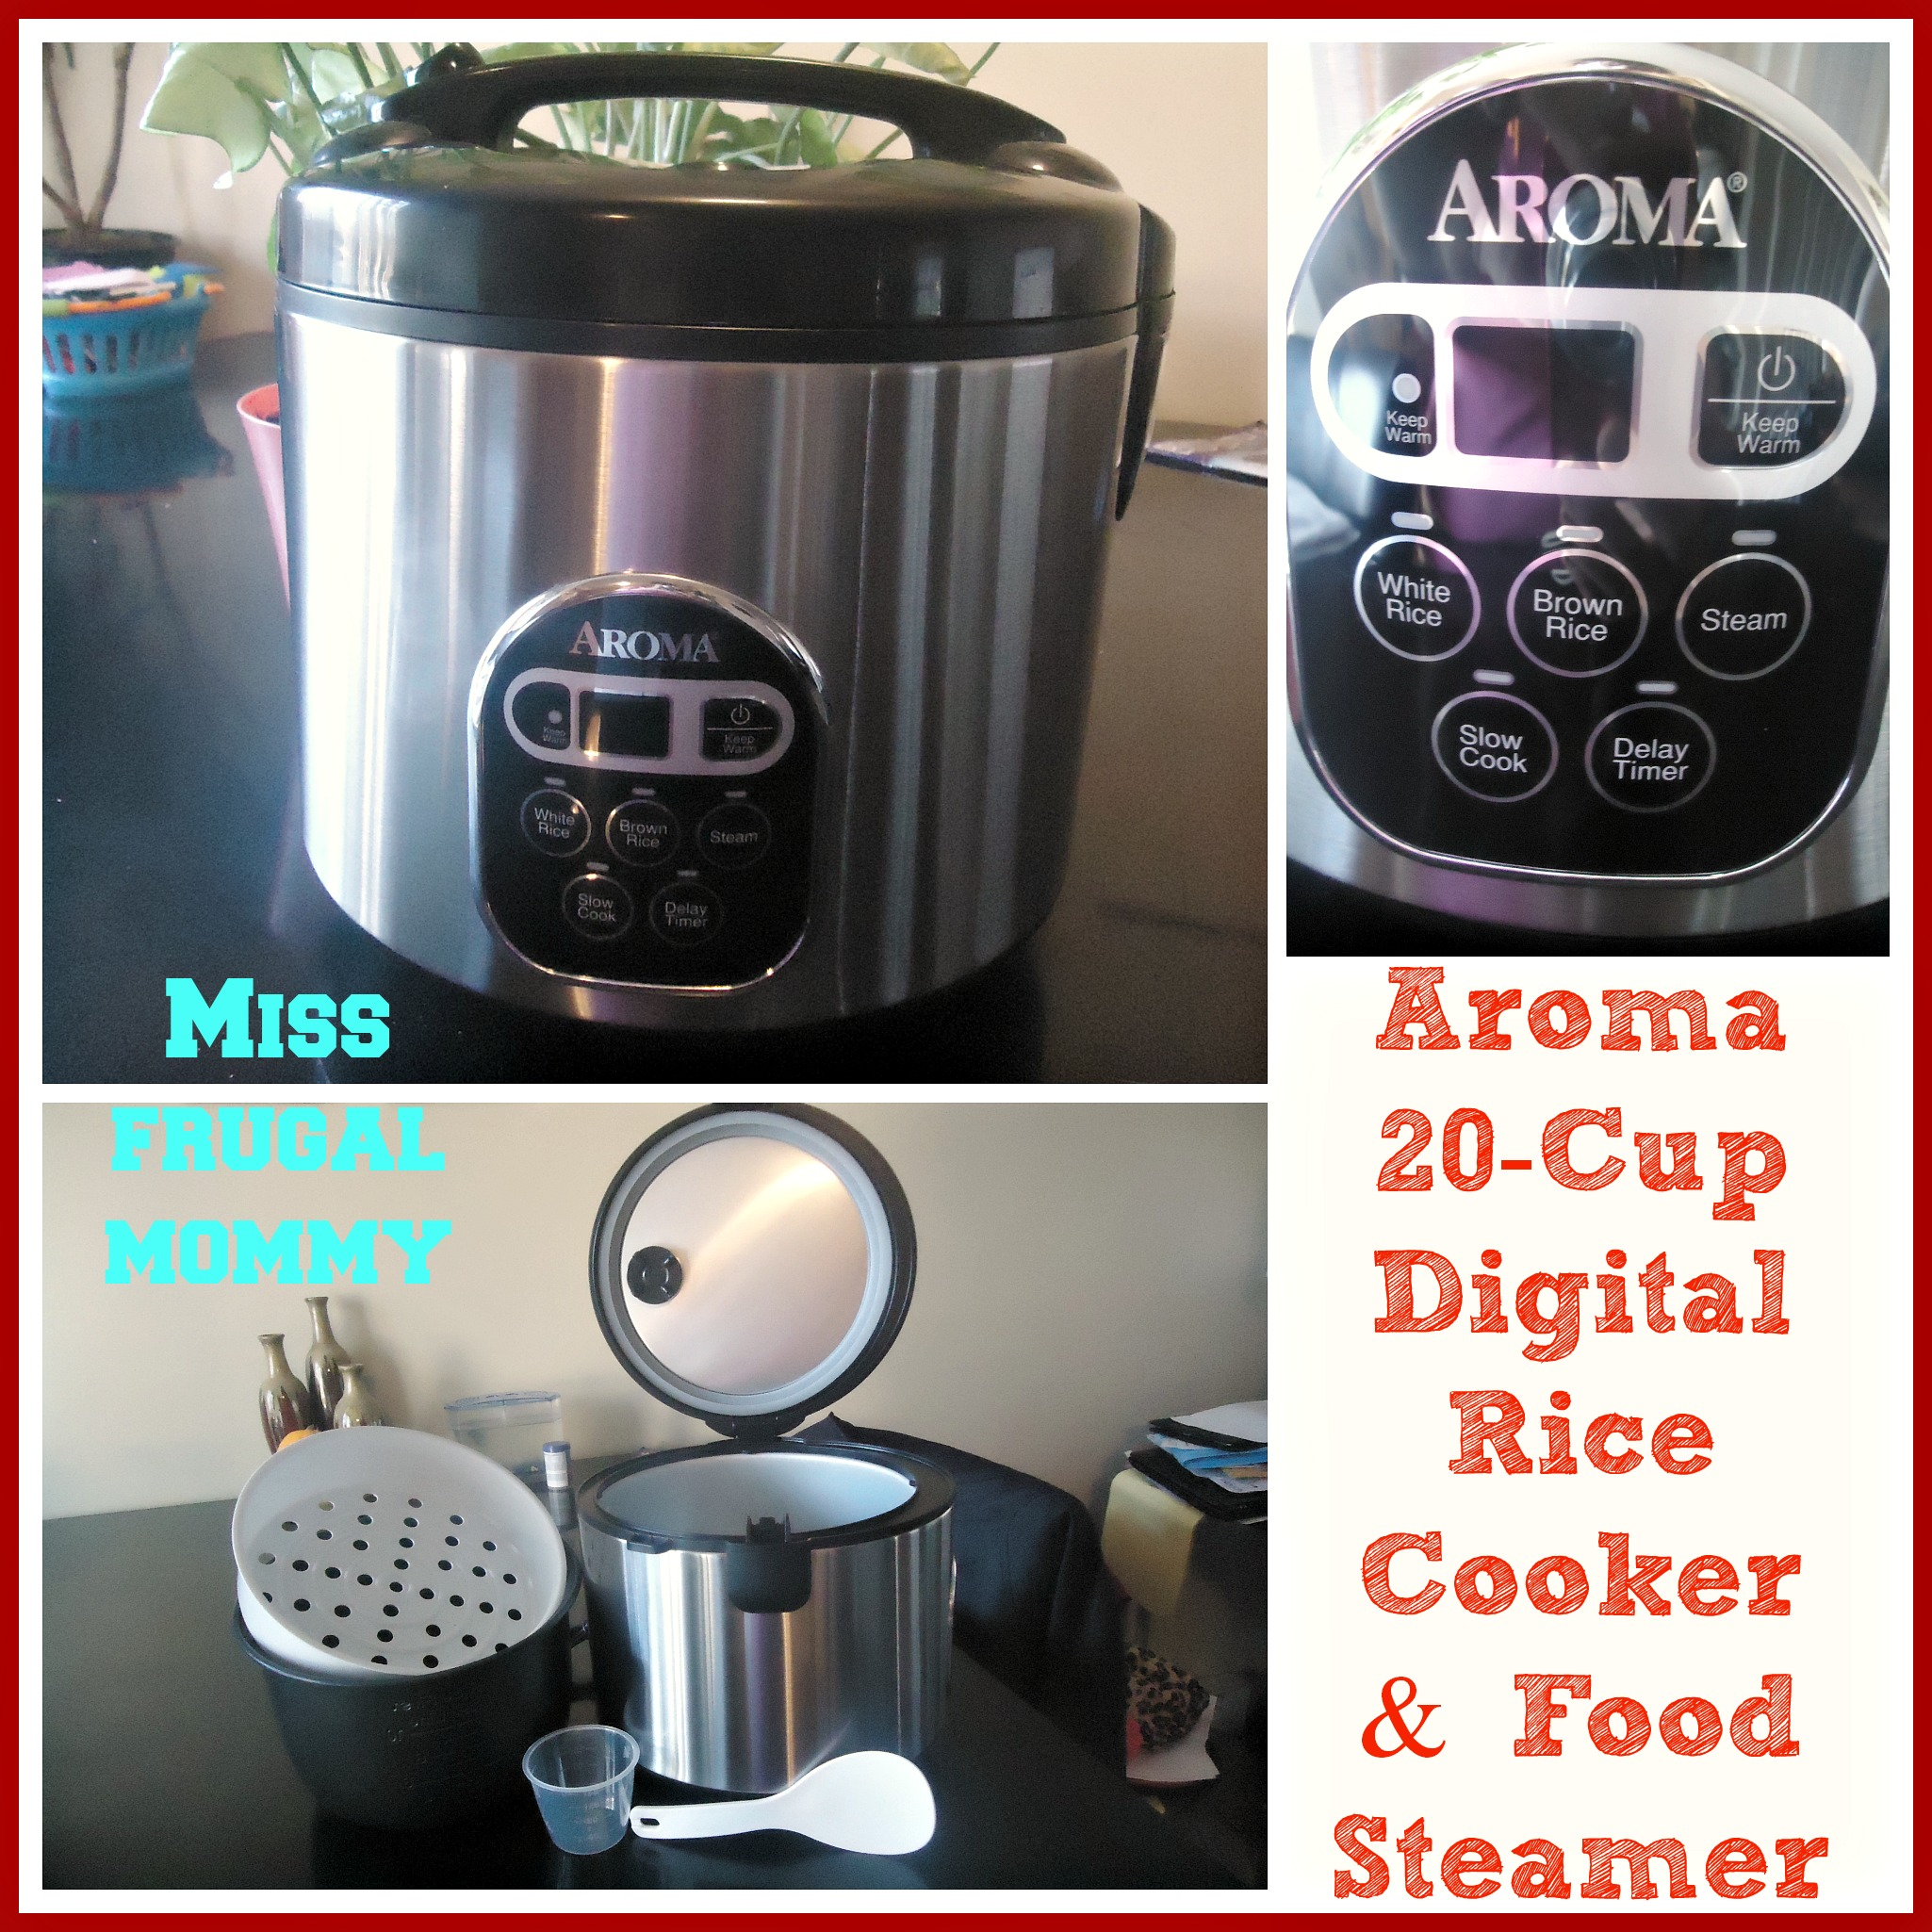 http://missfrugalmommy.com/wp-content/uploads/2013/12/rie-cooker-review.jpg